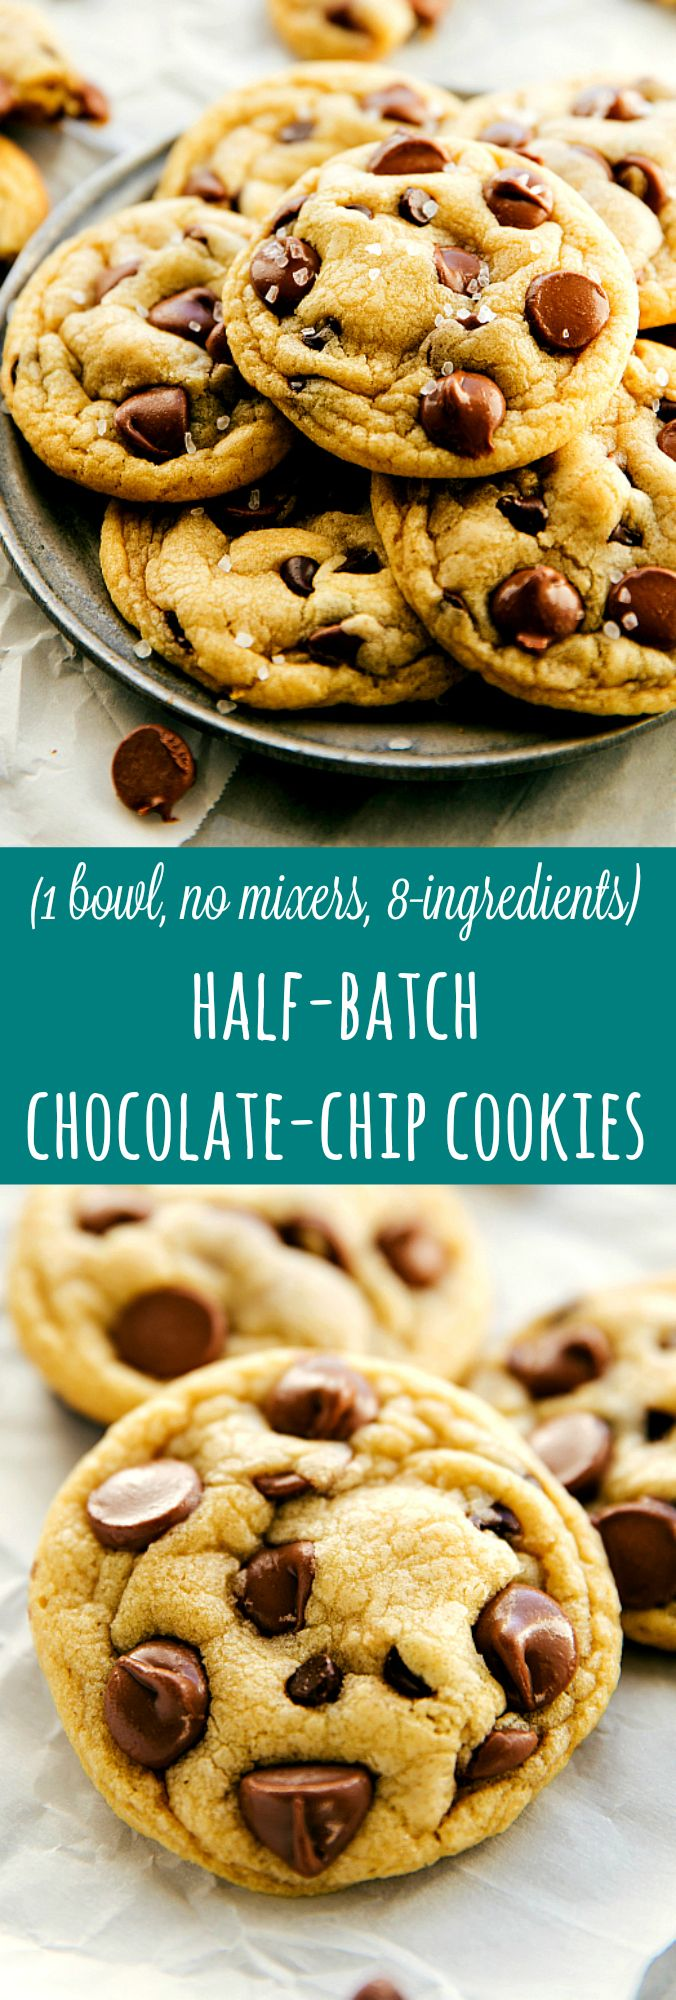 168 best Cookies! images on Pinterest   Cooking food, Recipes and ...